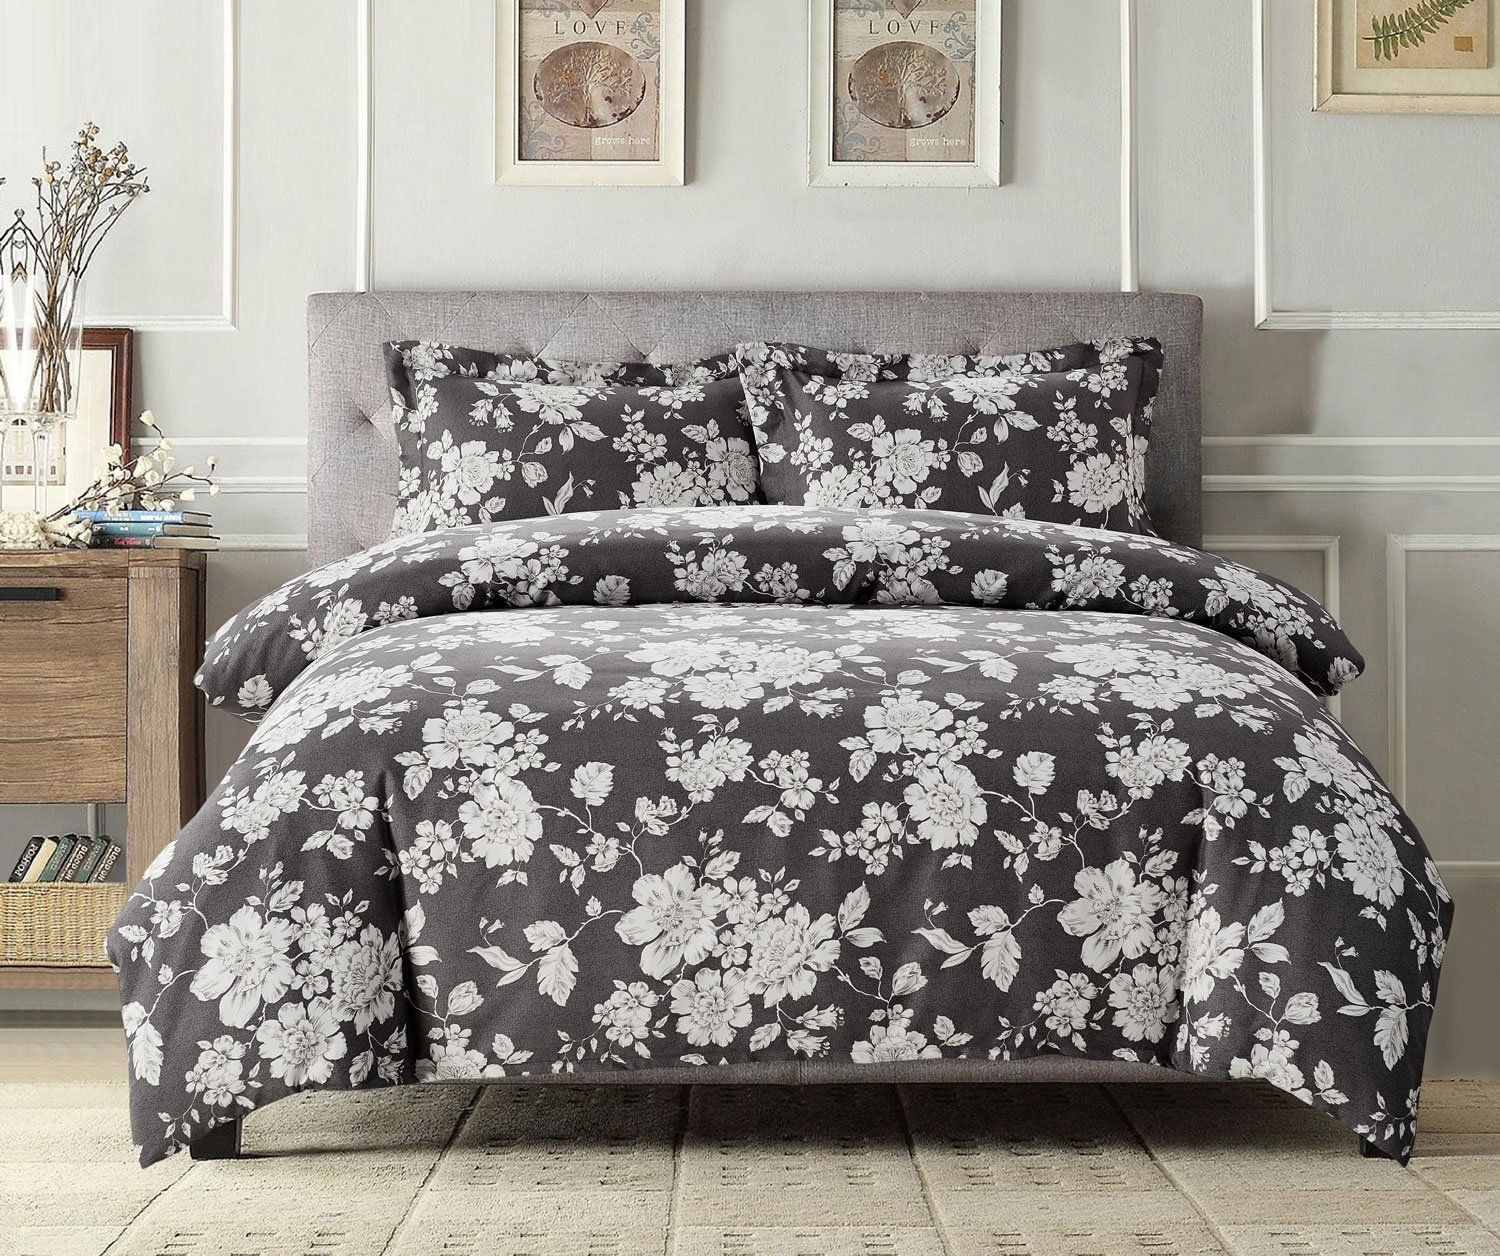 db4bb7721a7d Gray Floral Duvet Cover Set